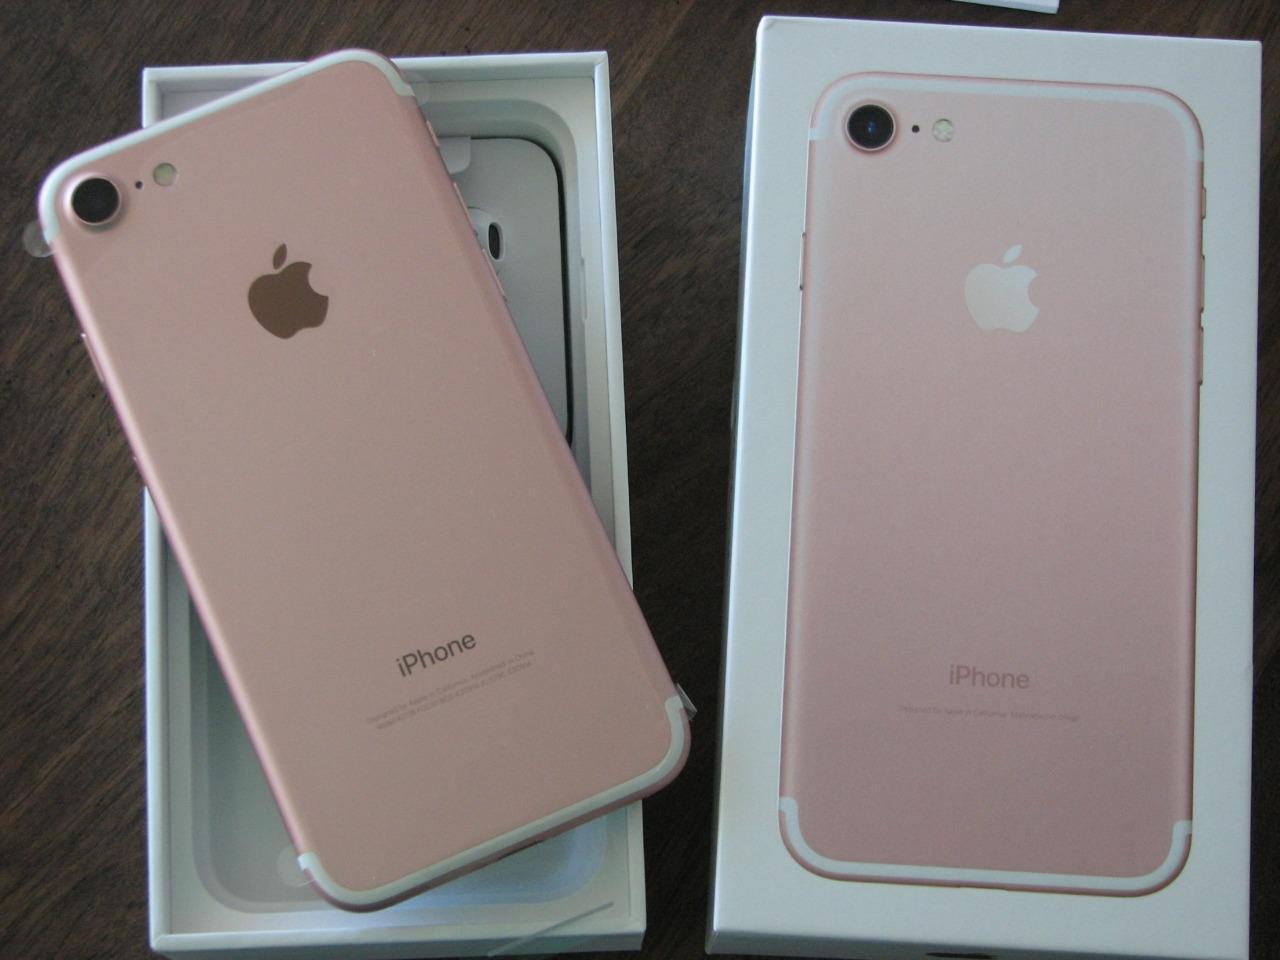 cad337dd199 iPhone 7 GOLD 128gb with box and all accessories